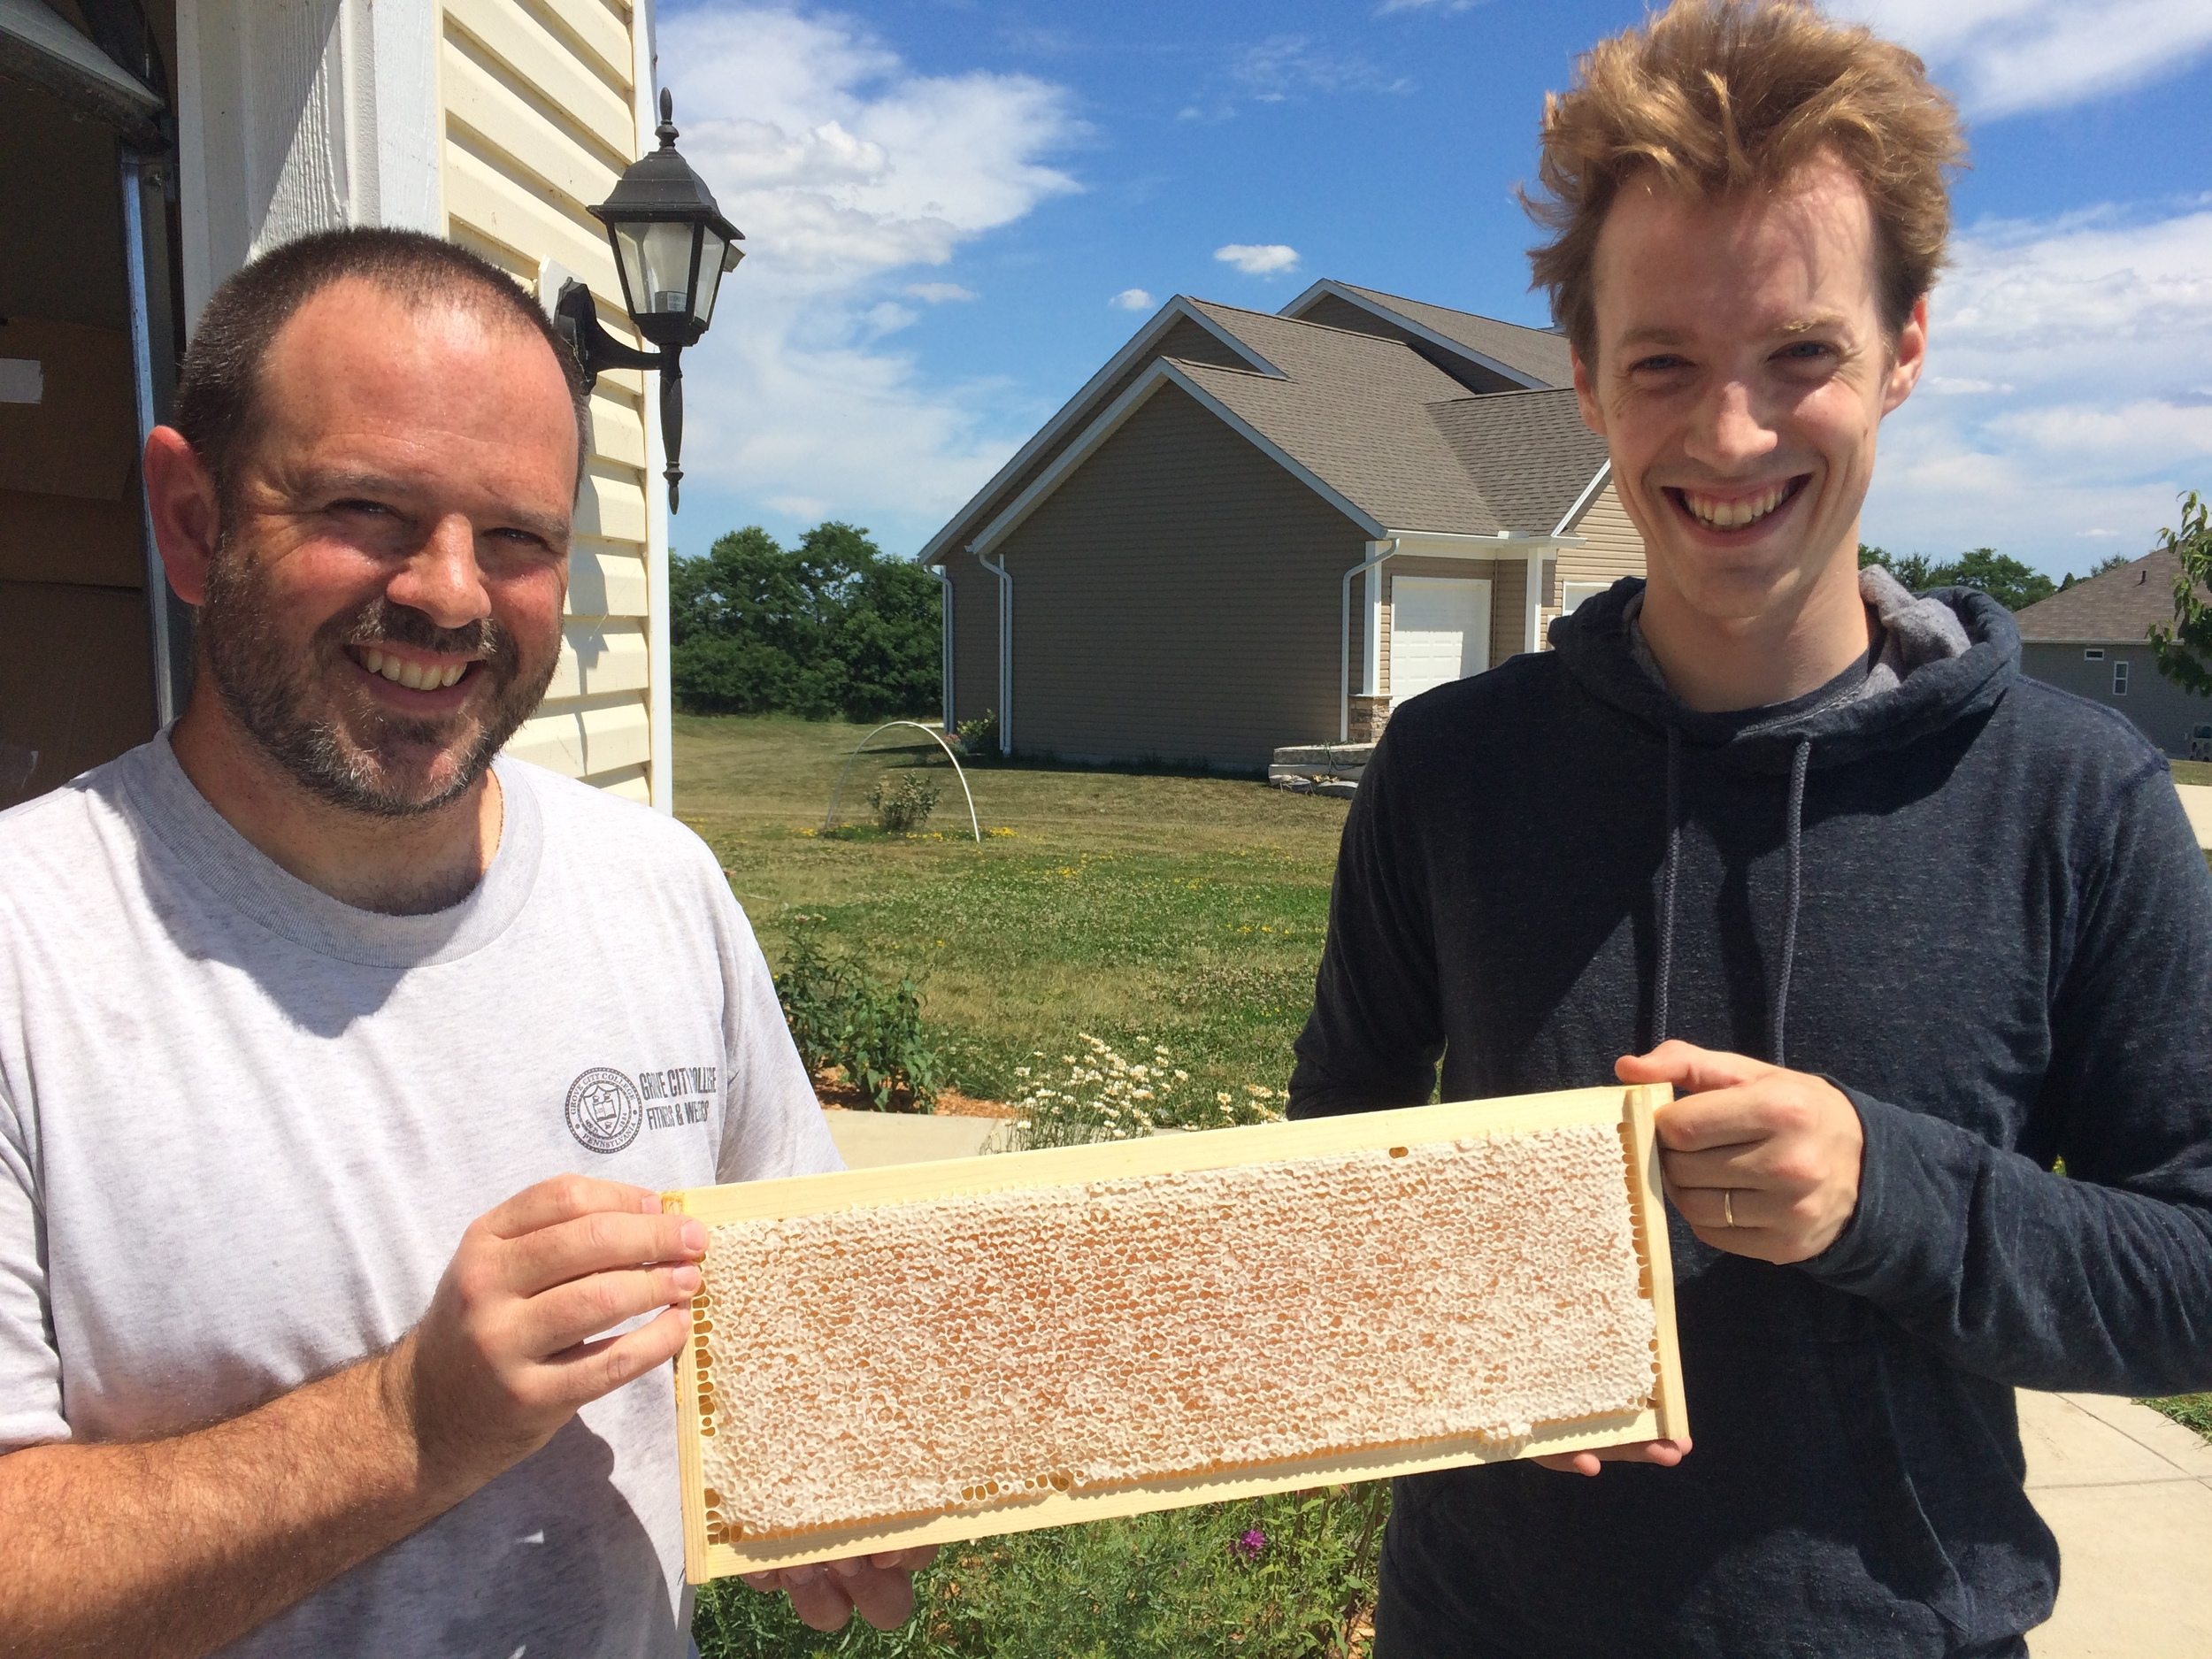 The proud bee keepers, Sam Foster and Mathias Reed!